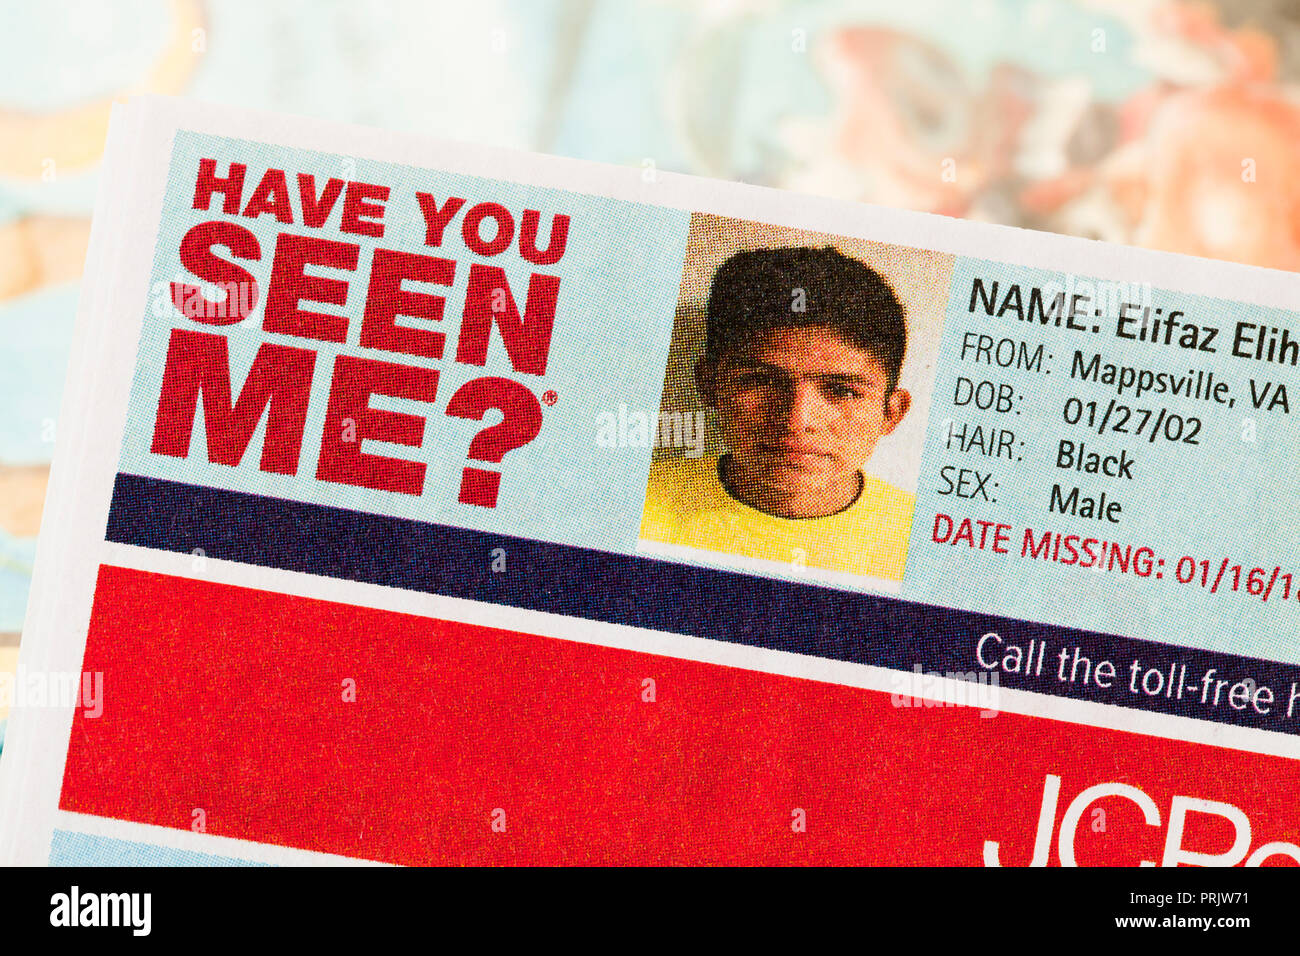 Have You Seen Me ad of missing Hispanic boy) missing children, missing child, missing person, missing persons - USA - Stock Image